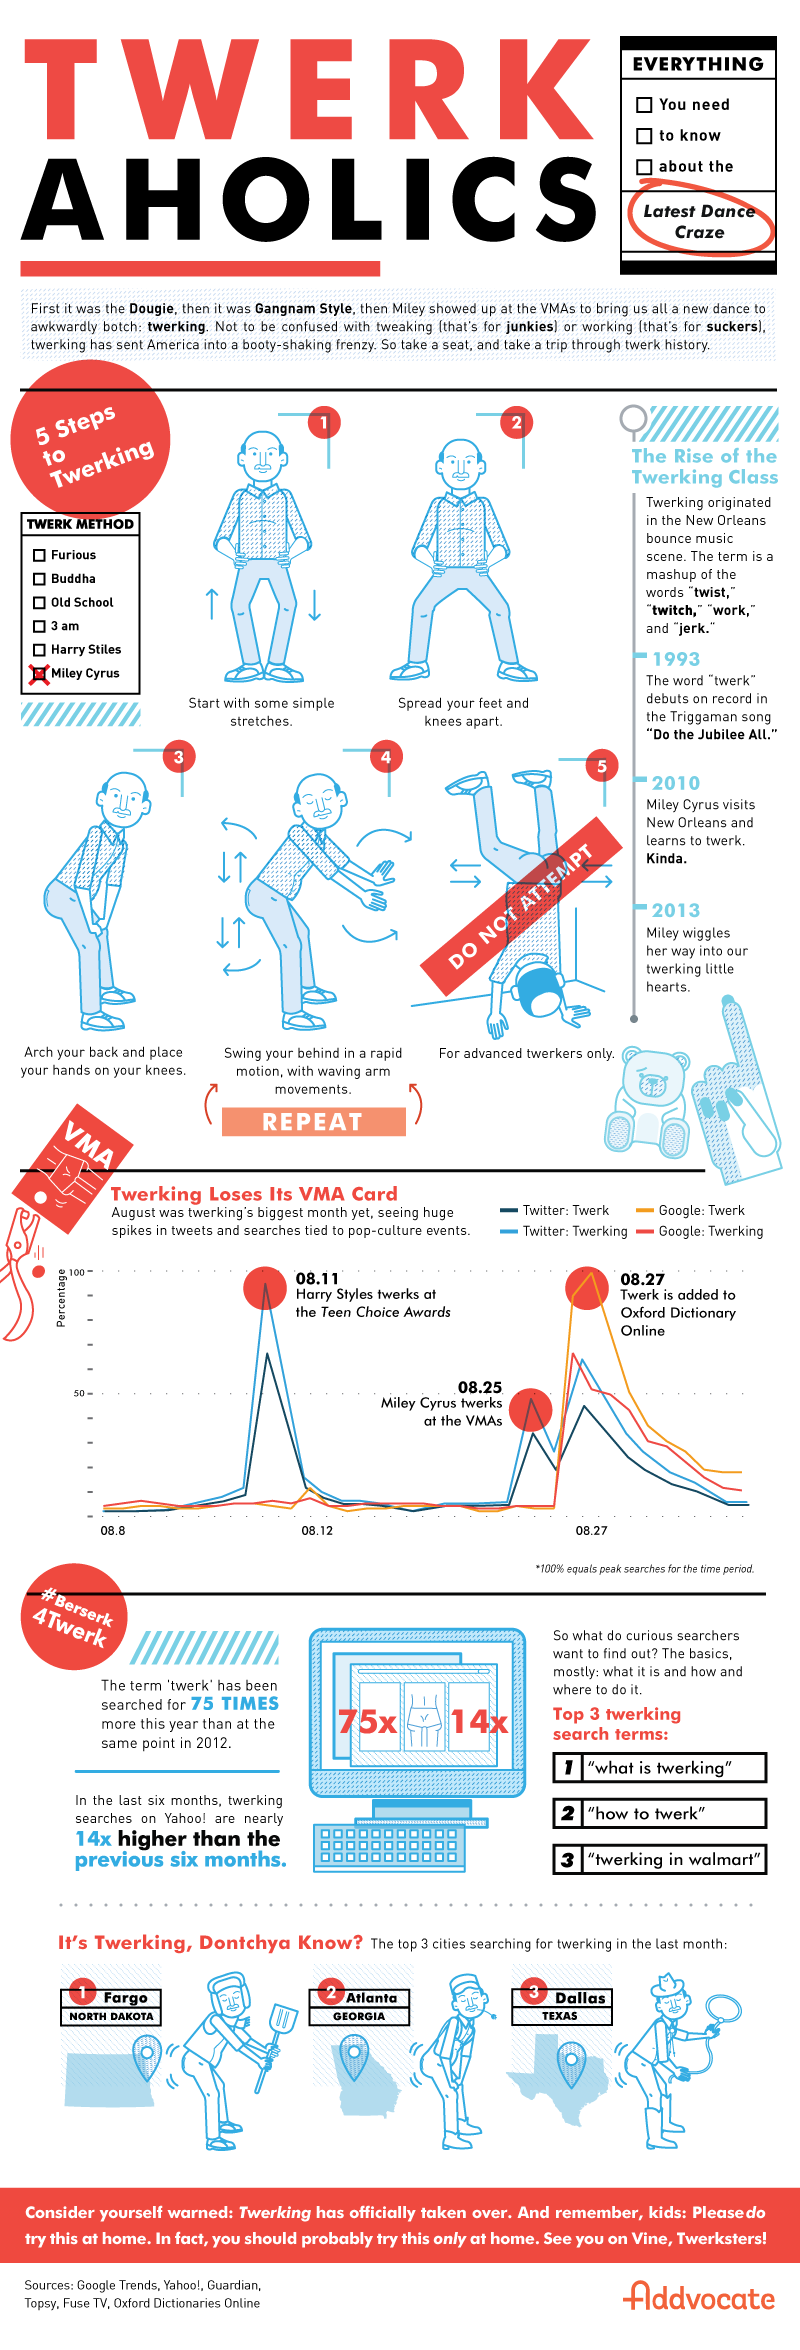 Infographic: Everything You Never Needed to Know About Twerking